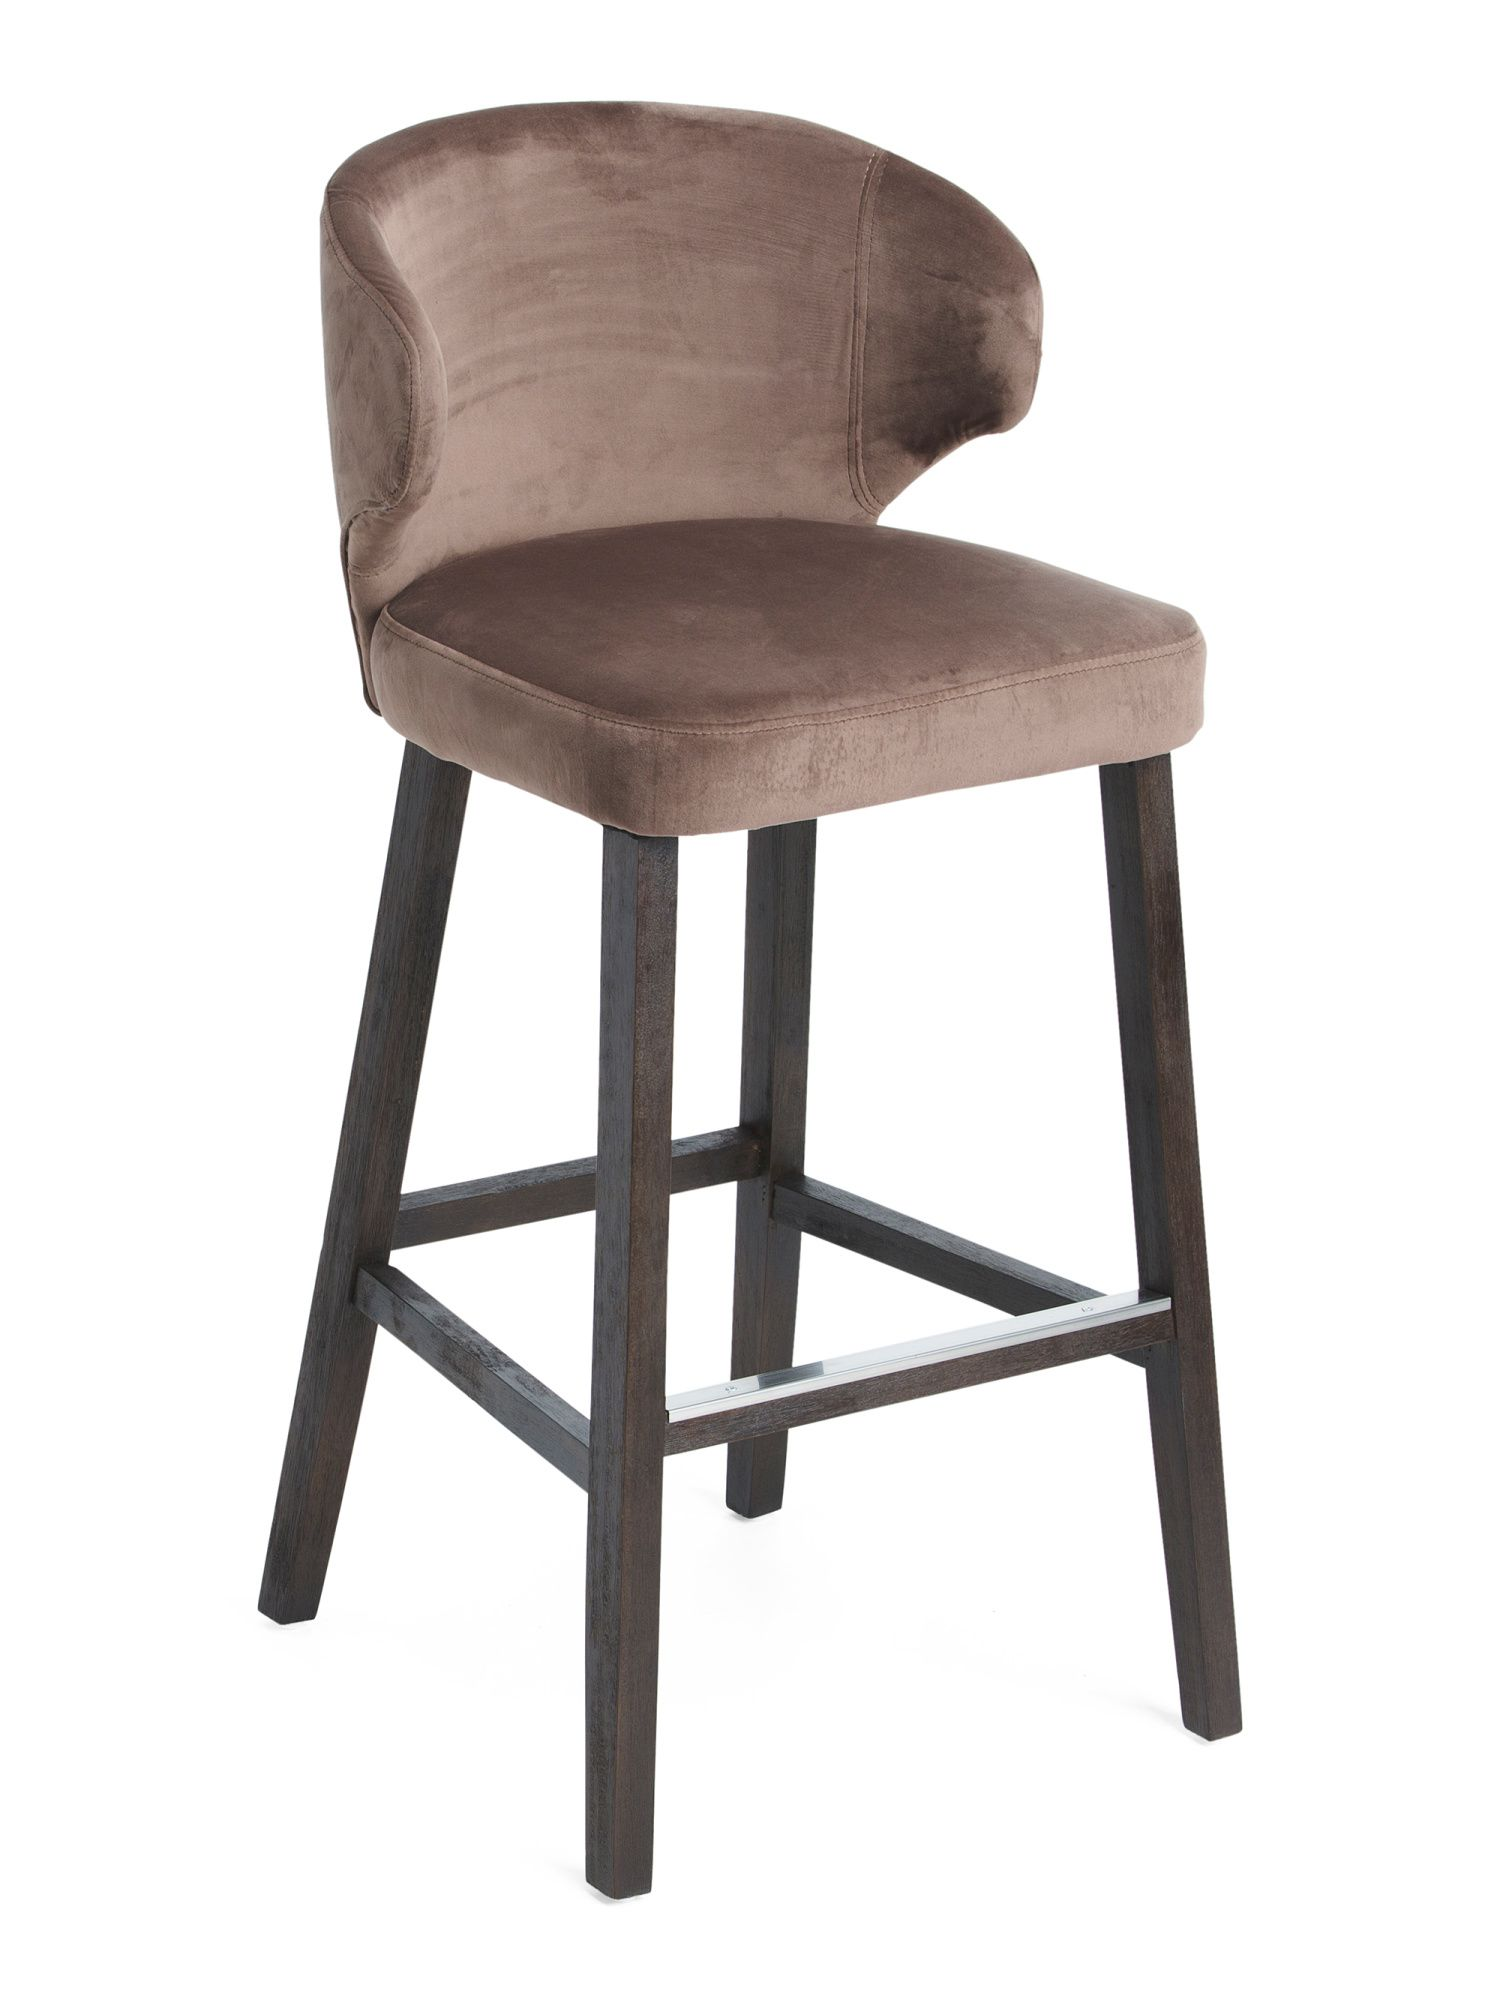 Groovy Carolina Round Back Barstool Furniture In 2019 Bar Machost Co Dining Chair Design Ideas Machostcouk